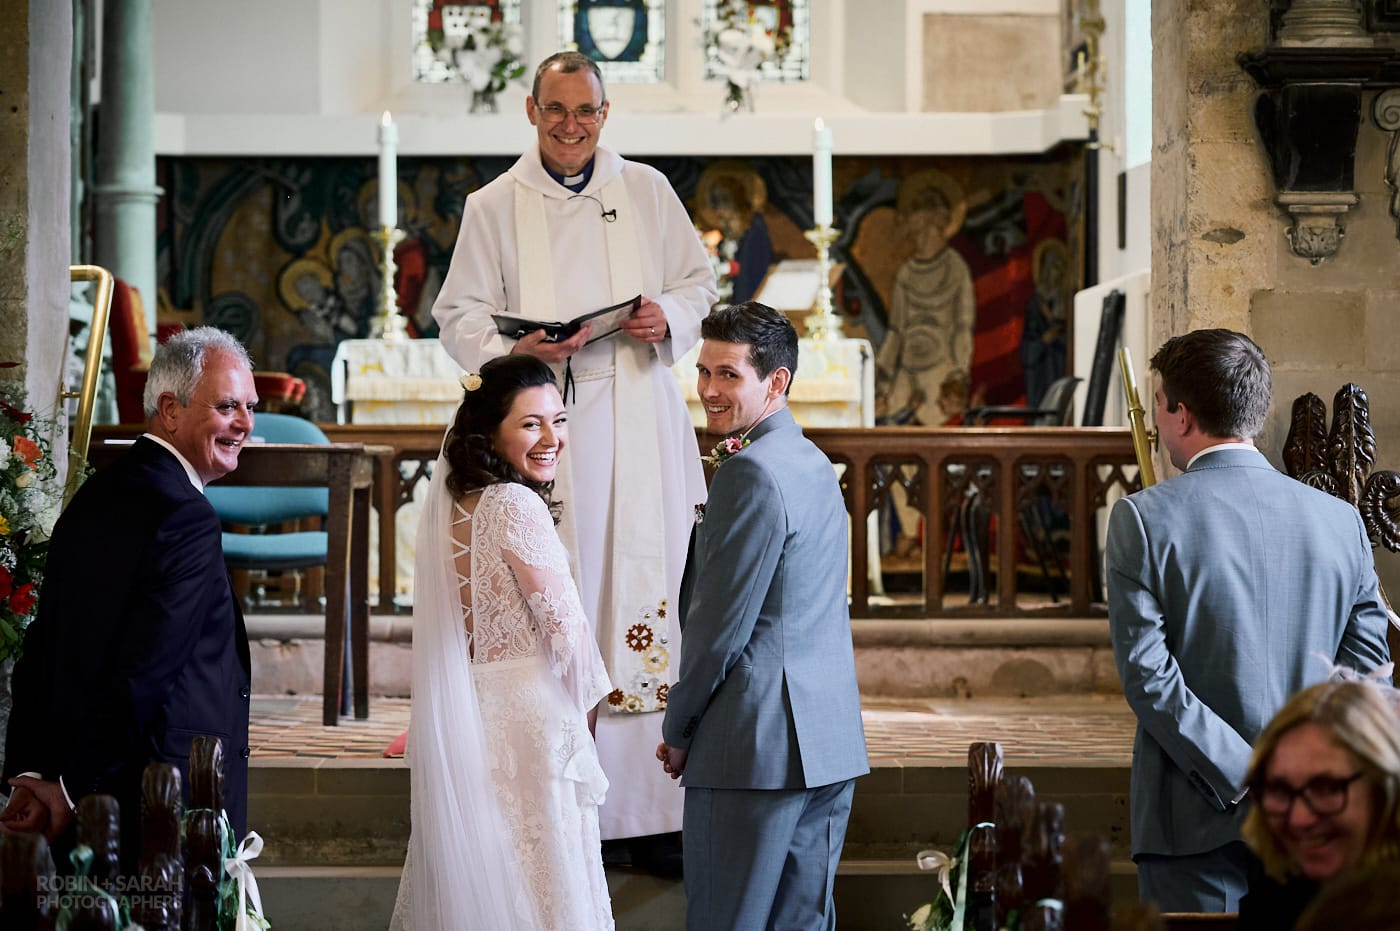 Bride and groom turn to look at guests during wedding ceremony